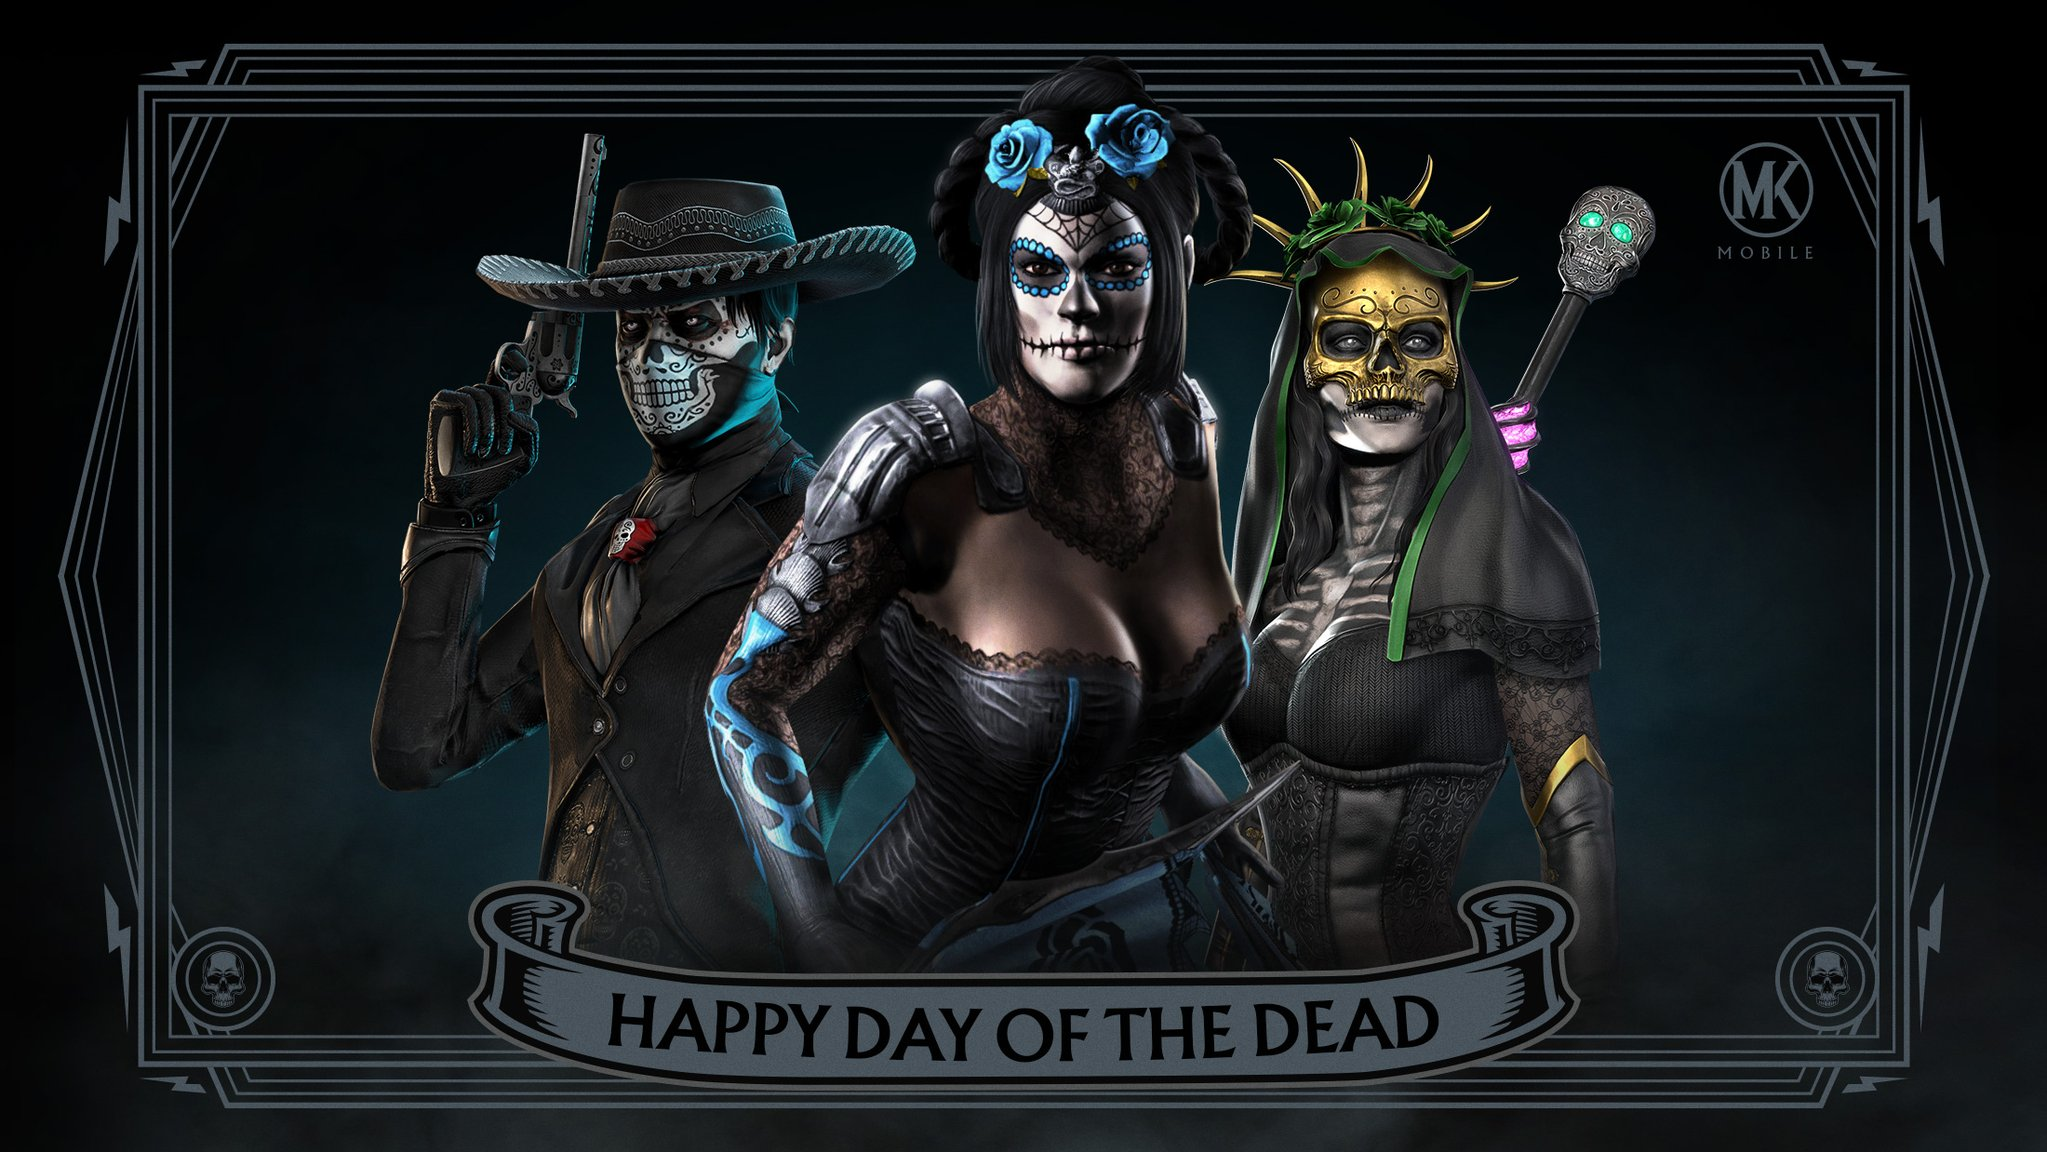 Mortal Kombat Mobile background - Happy Day of the Dead